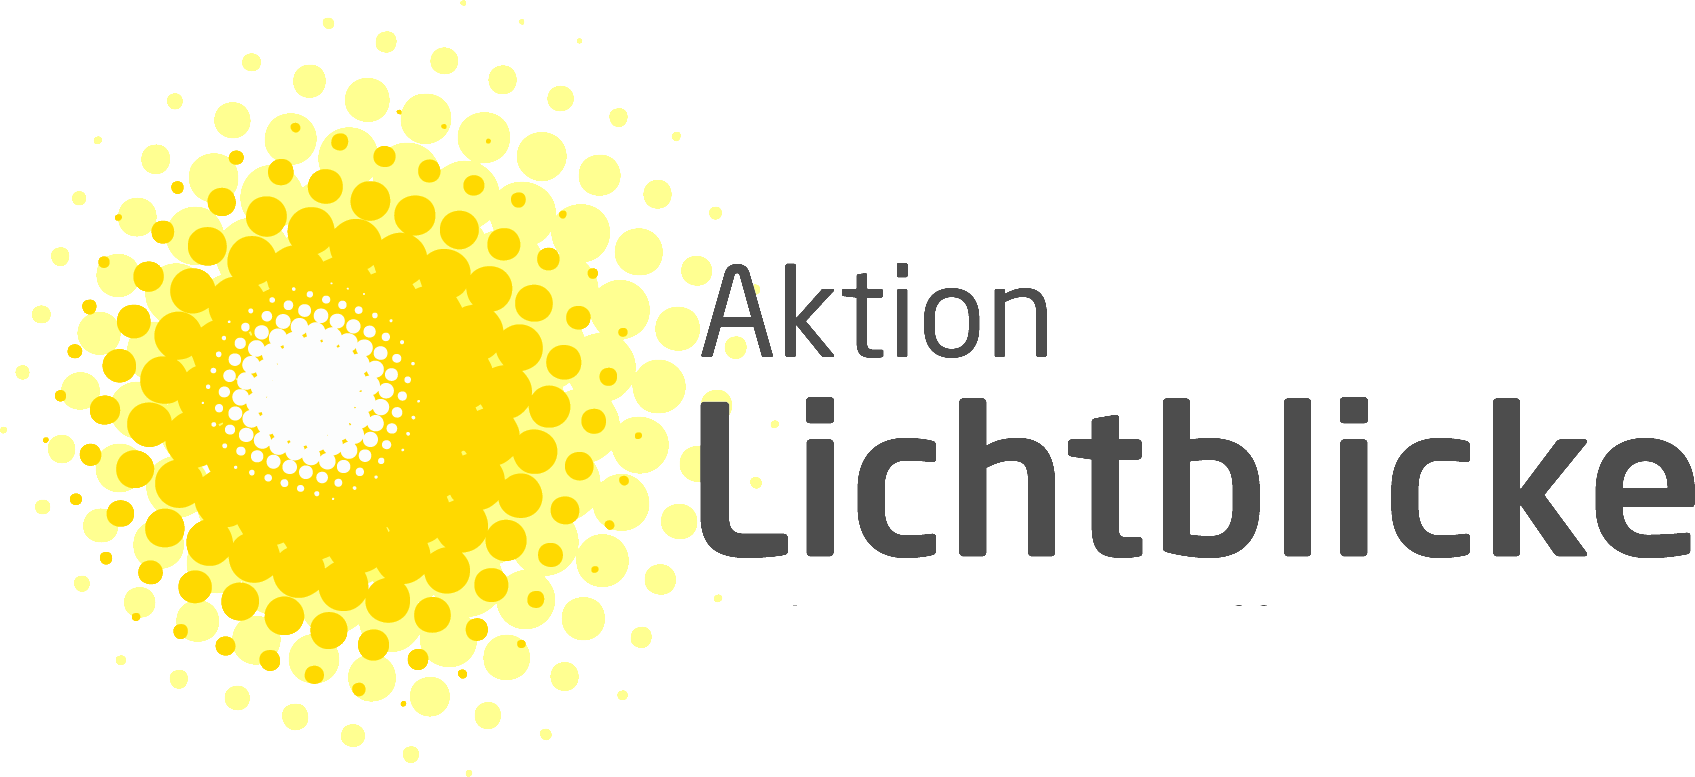 More about AktionLichtblicke